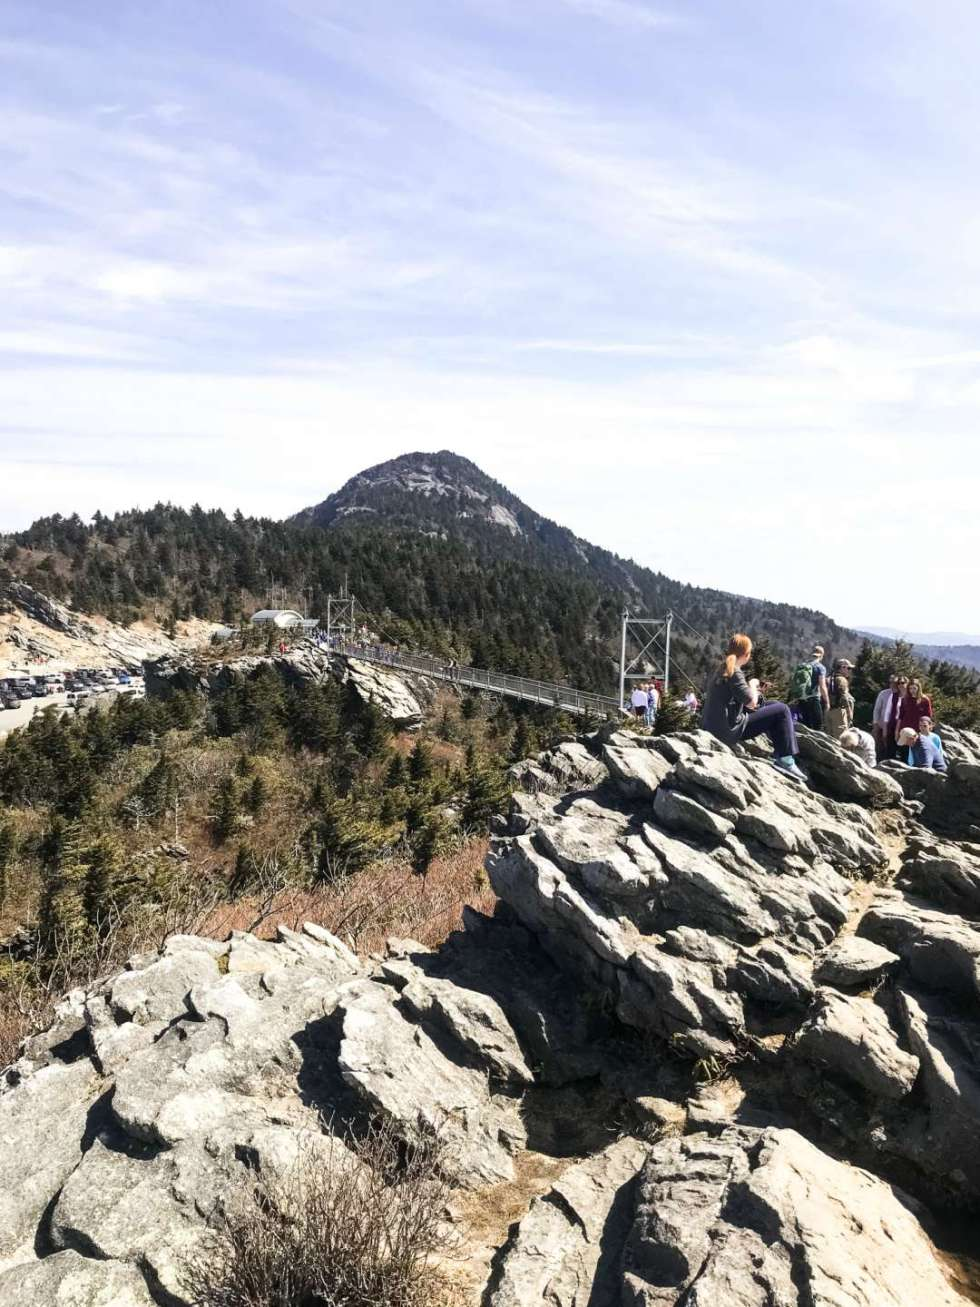 Blowing Rock Travel Guide - I'm Fixin' To - @mbg0112